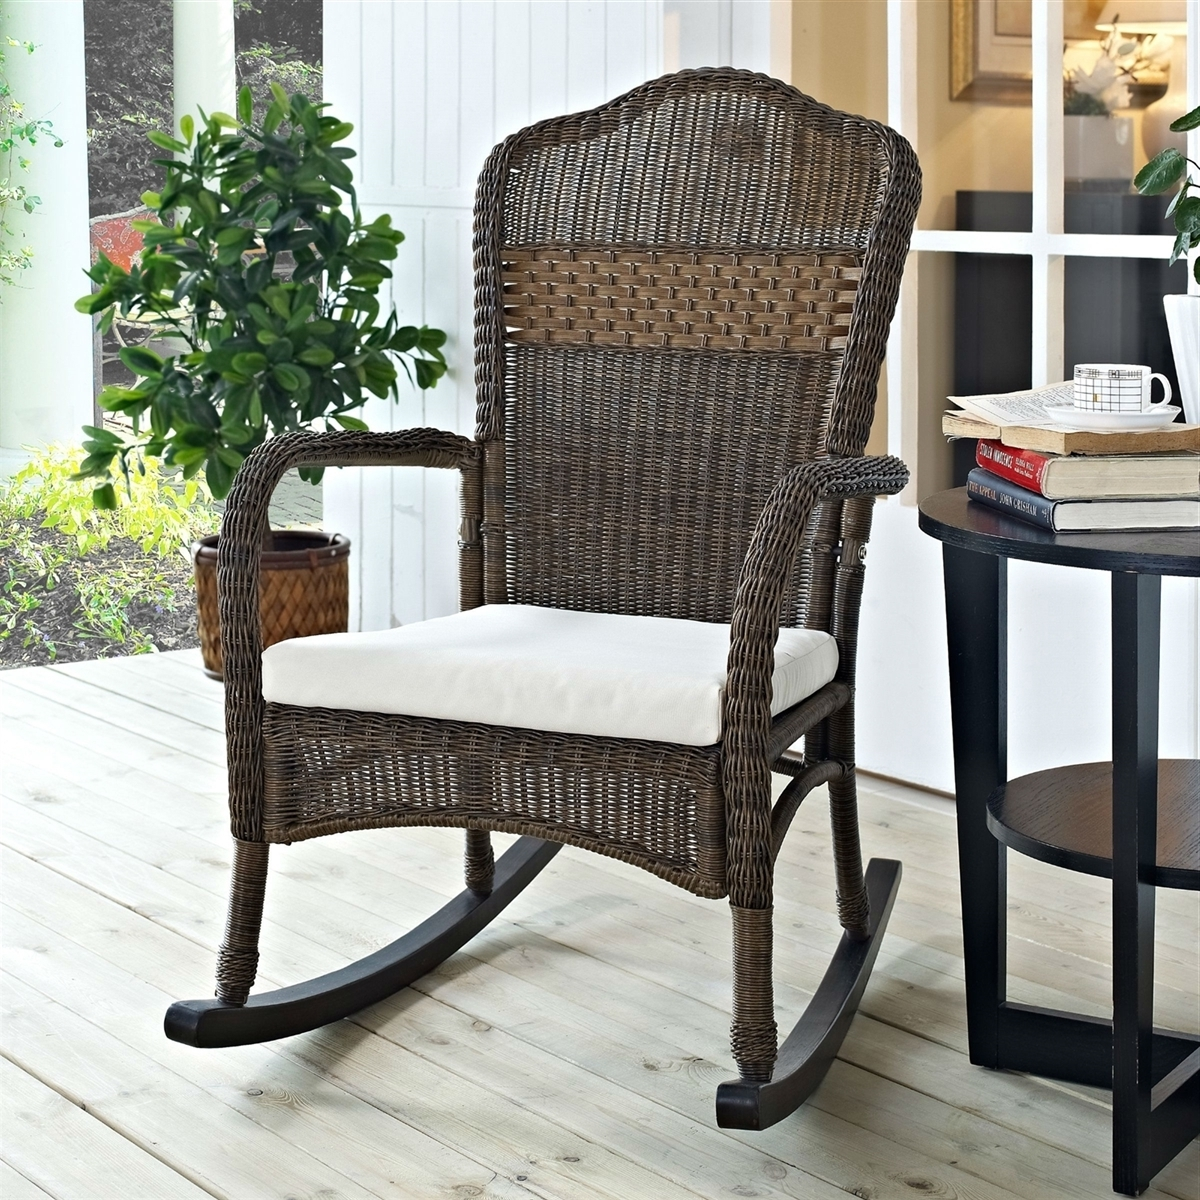 Wicker Patio Furniture Rocking Chair Mocha With Beige Cushion For Most Current Resin Wicker Patio Rocking Chairs (View 3 of 20)